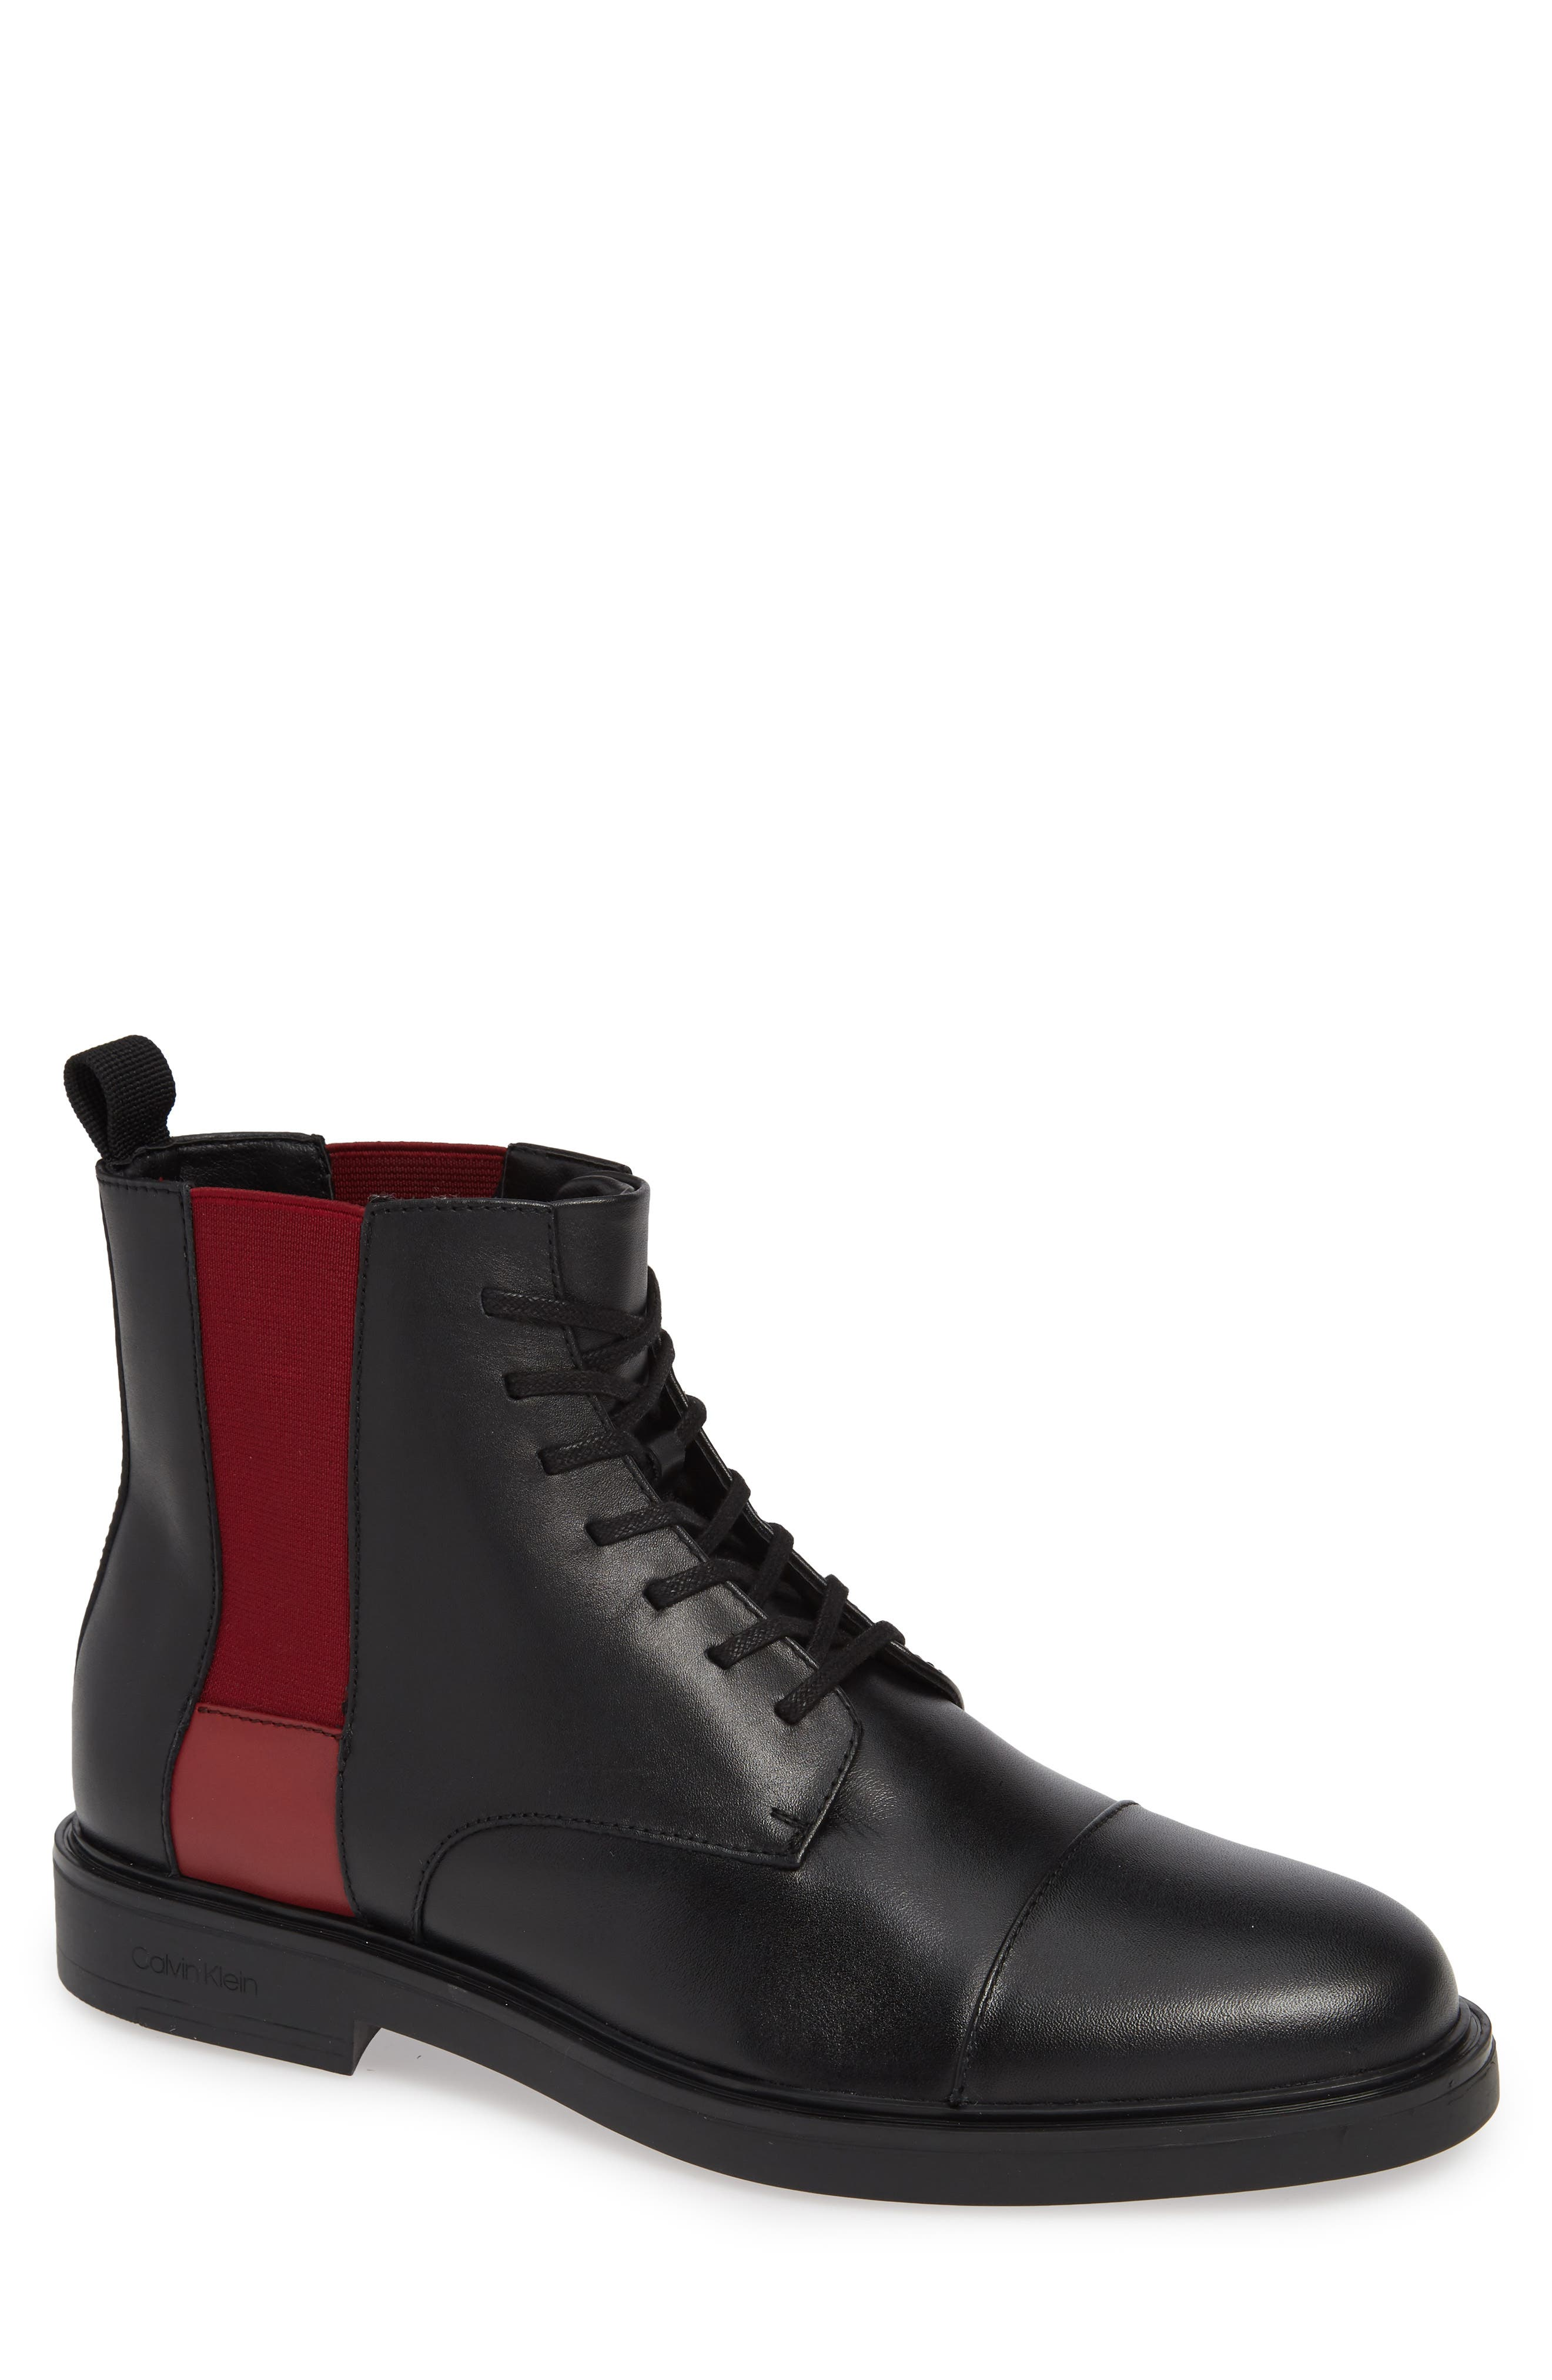 Dameon Lace-Up Boot,                             Main thumbnail 1, color,                             BLACK/ RED ROCK LEATHER